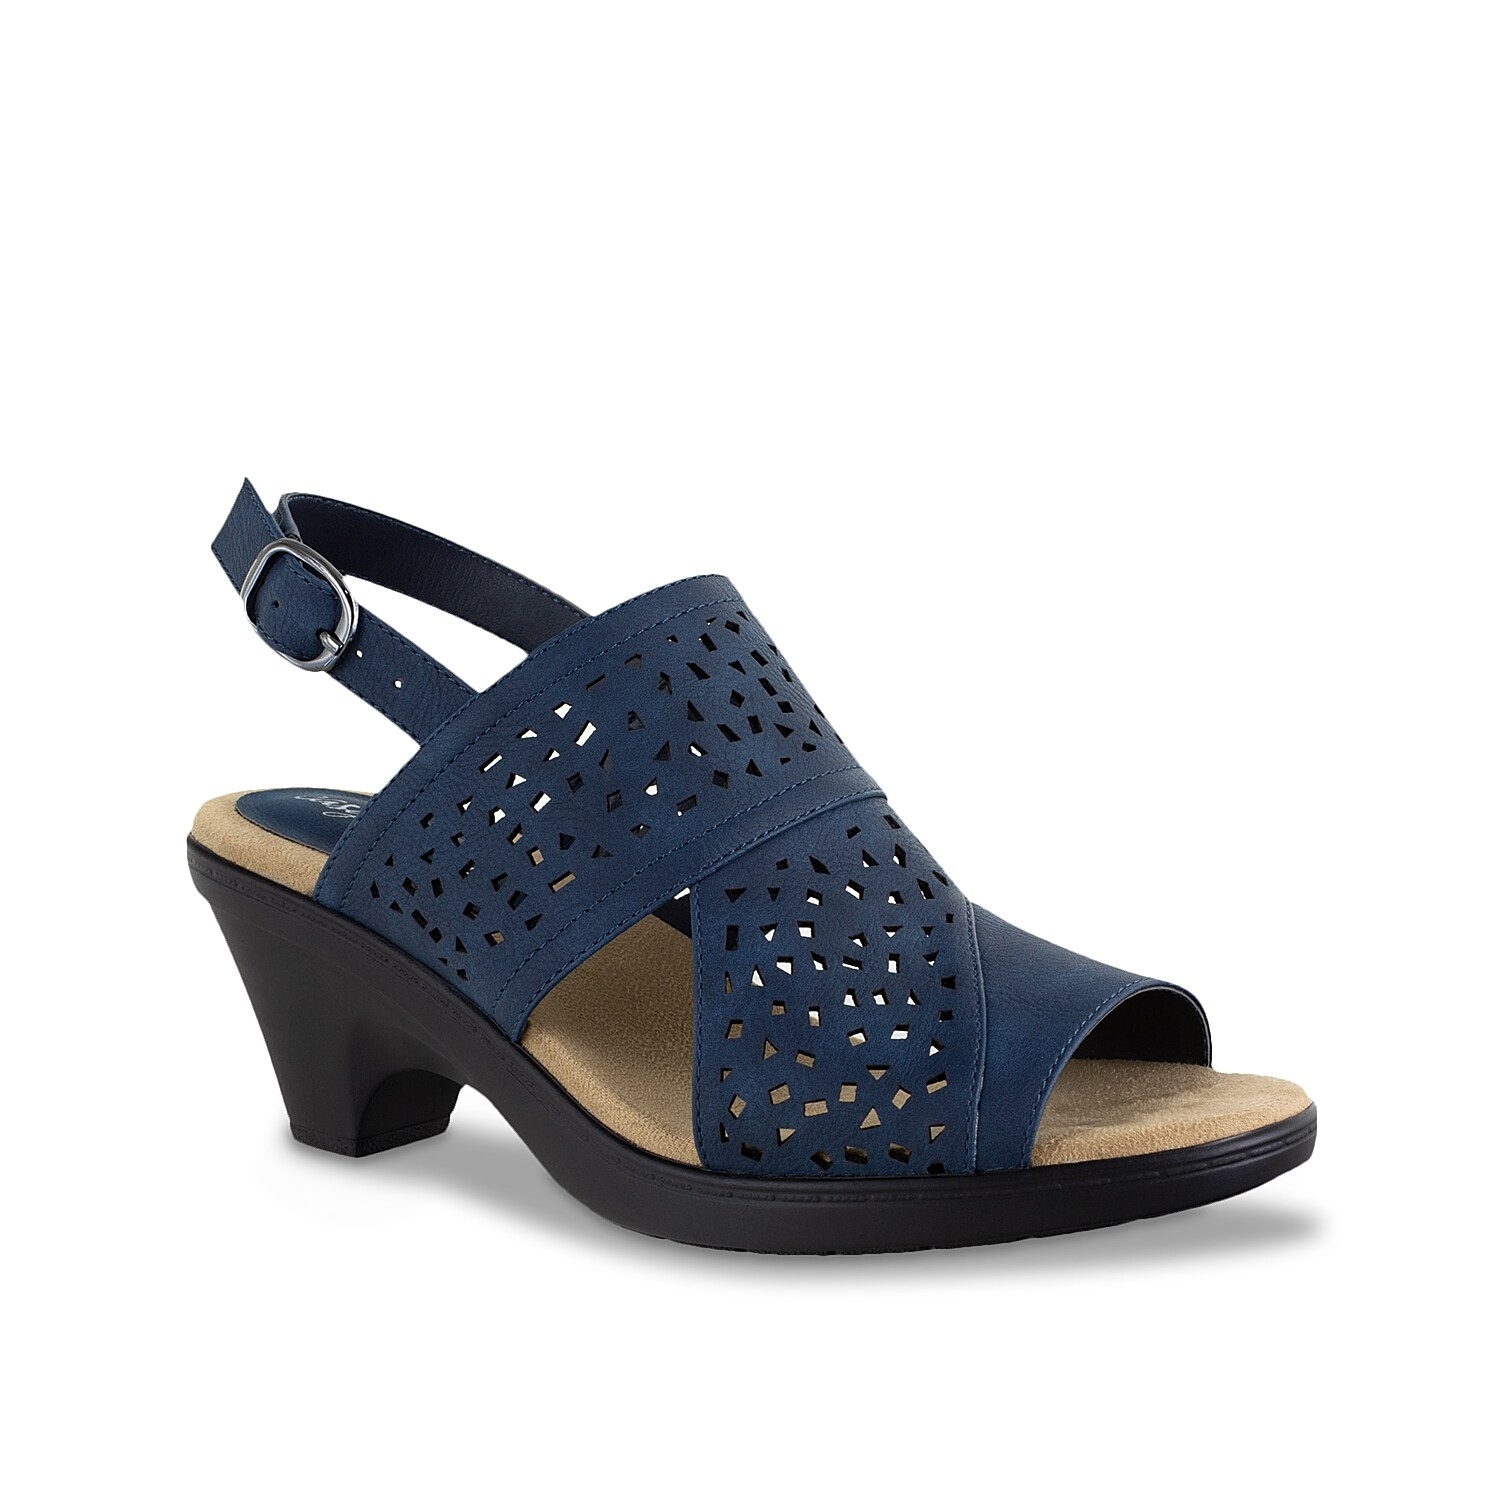 Fulfill your shoe requirements with the Charleigh sandal from Easy Street. This silhouette is fashioned with a laser-cut upper and cushioned footbed for daylong wear.